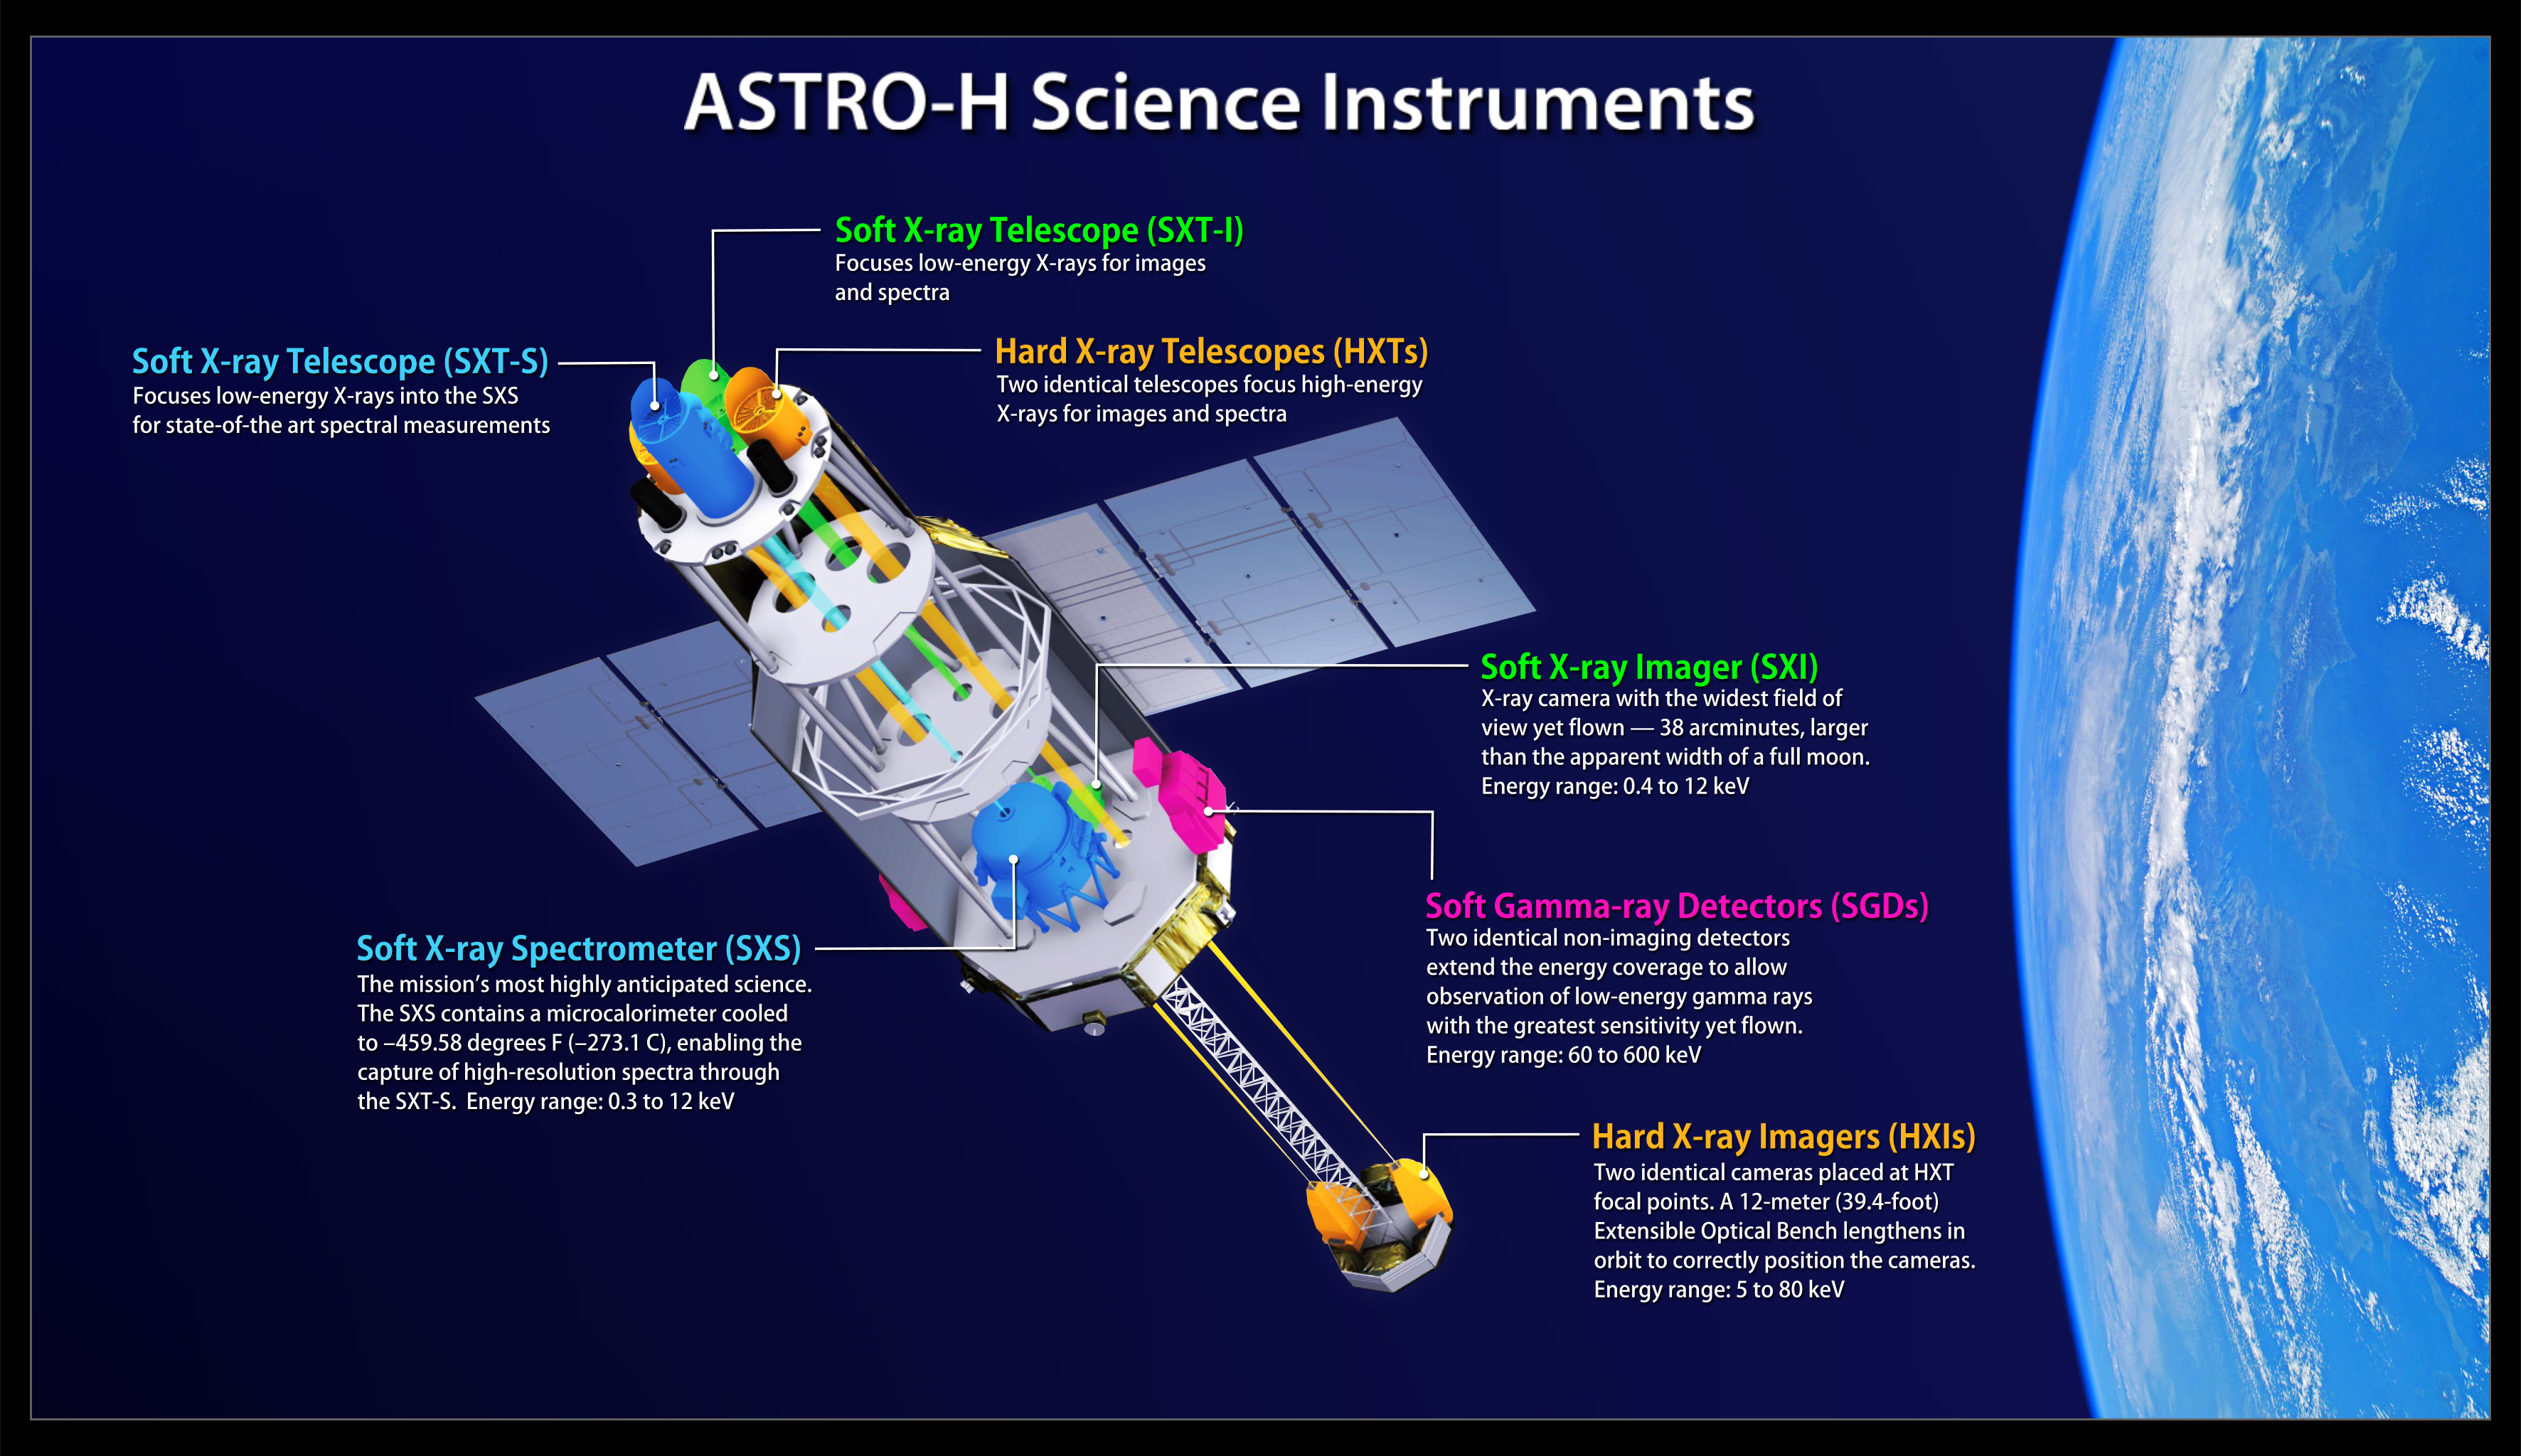 this shows the locations and energy ranges of astroh science instruments and their